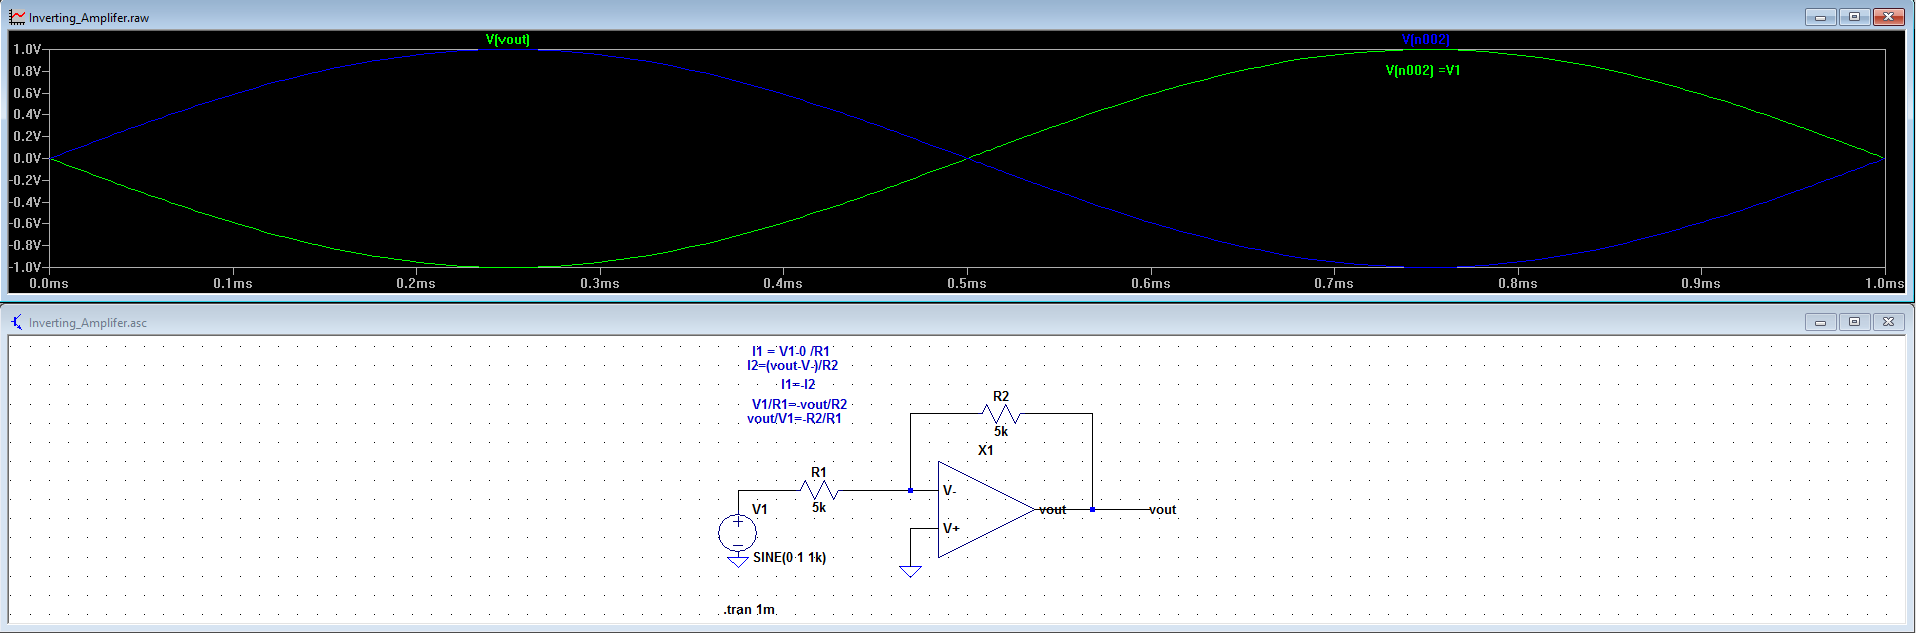 Introduction To Operational Amplifiers With Ltspice Types Of Op Amp Circuit Project The Summing Amplifier